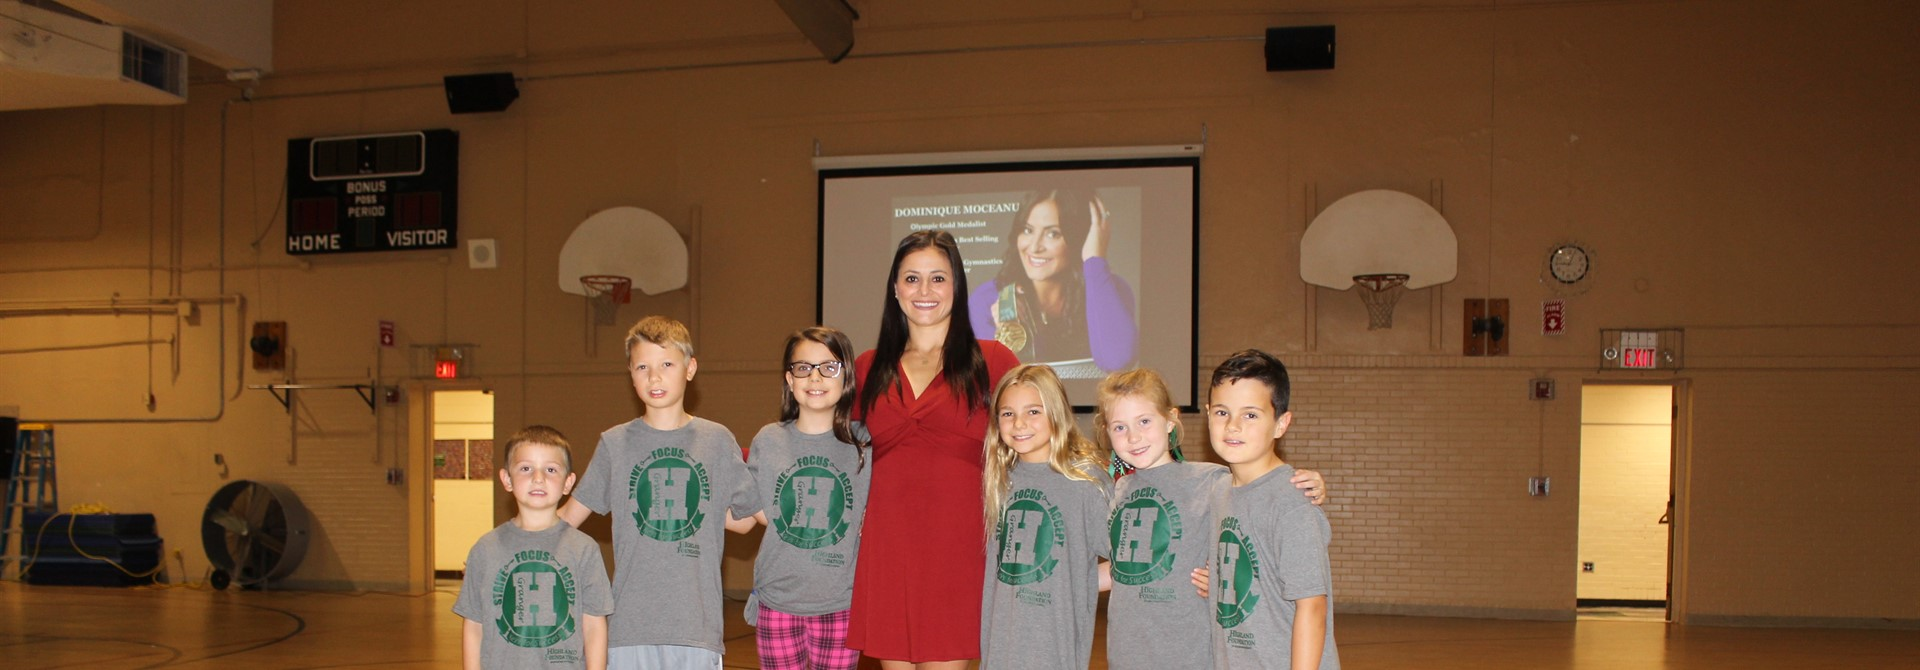 Olympic Gymnast Dominique Moceanu Visits Granger Elementary